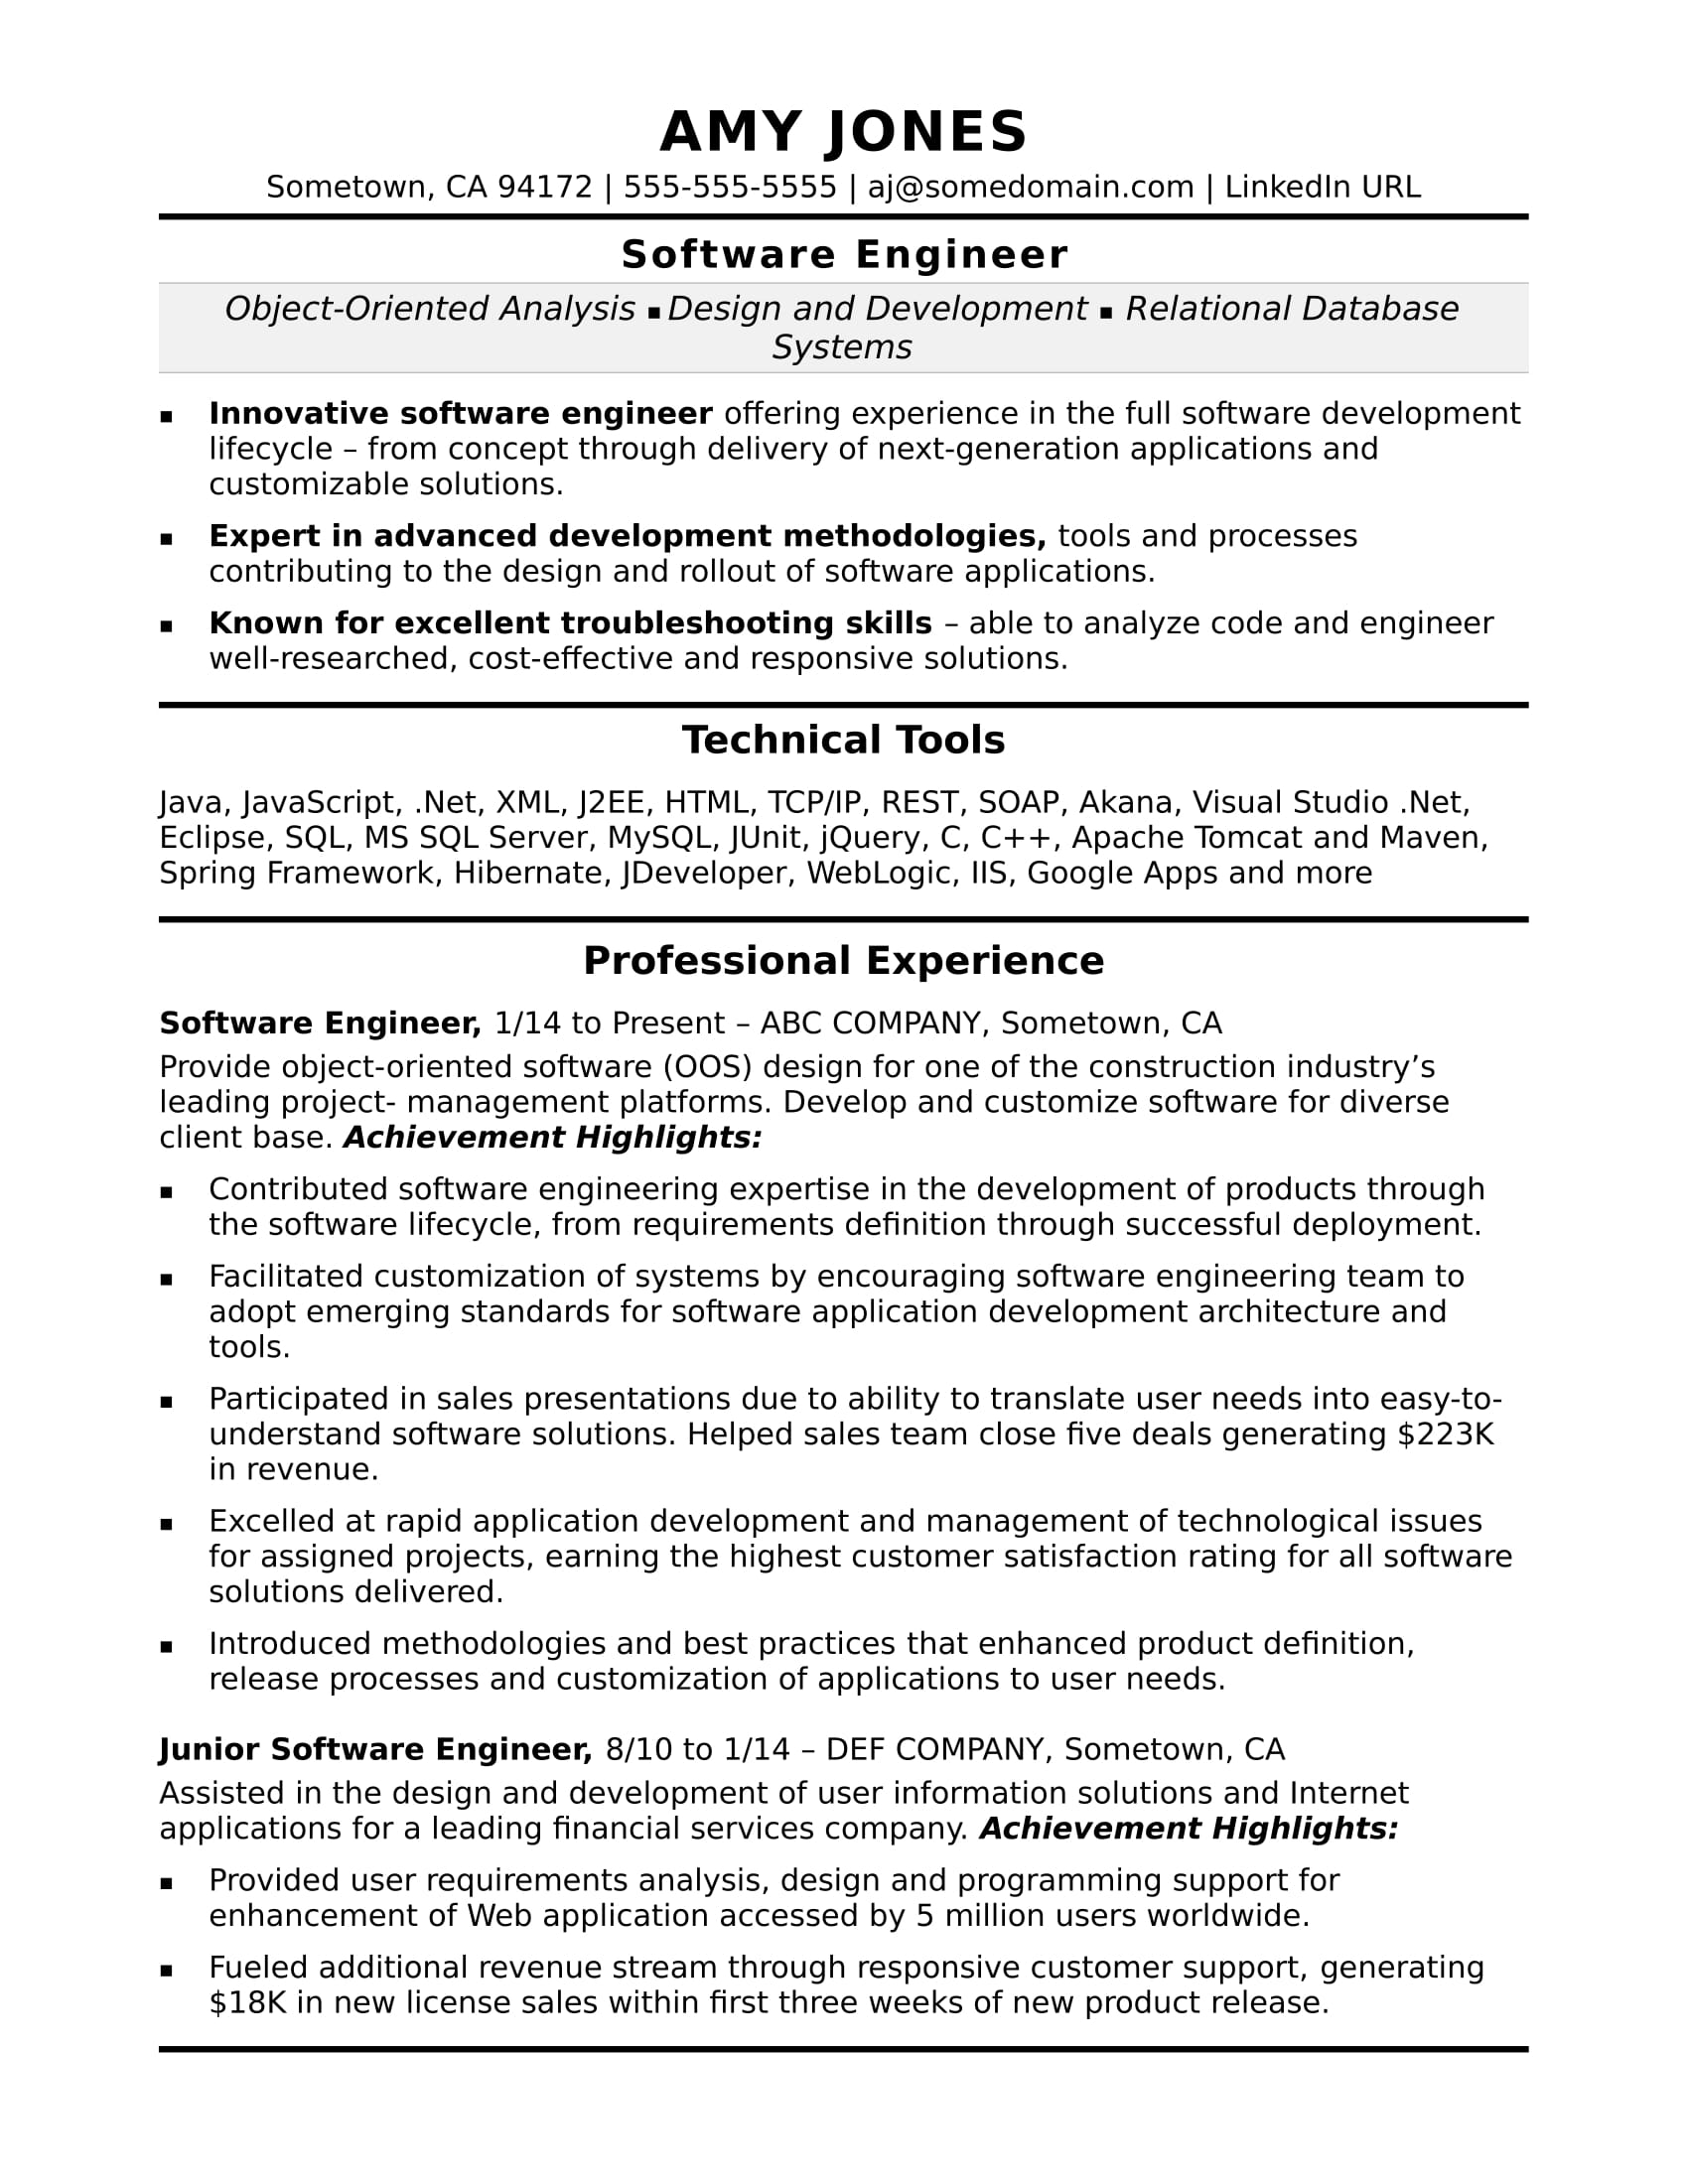 midlevel software engineer sample resume